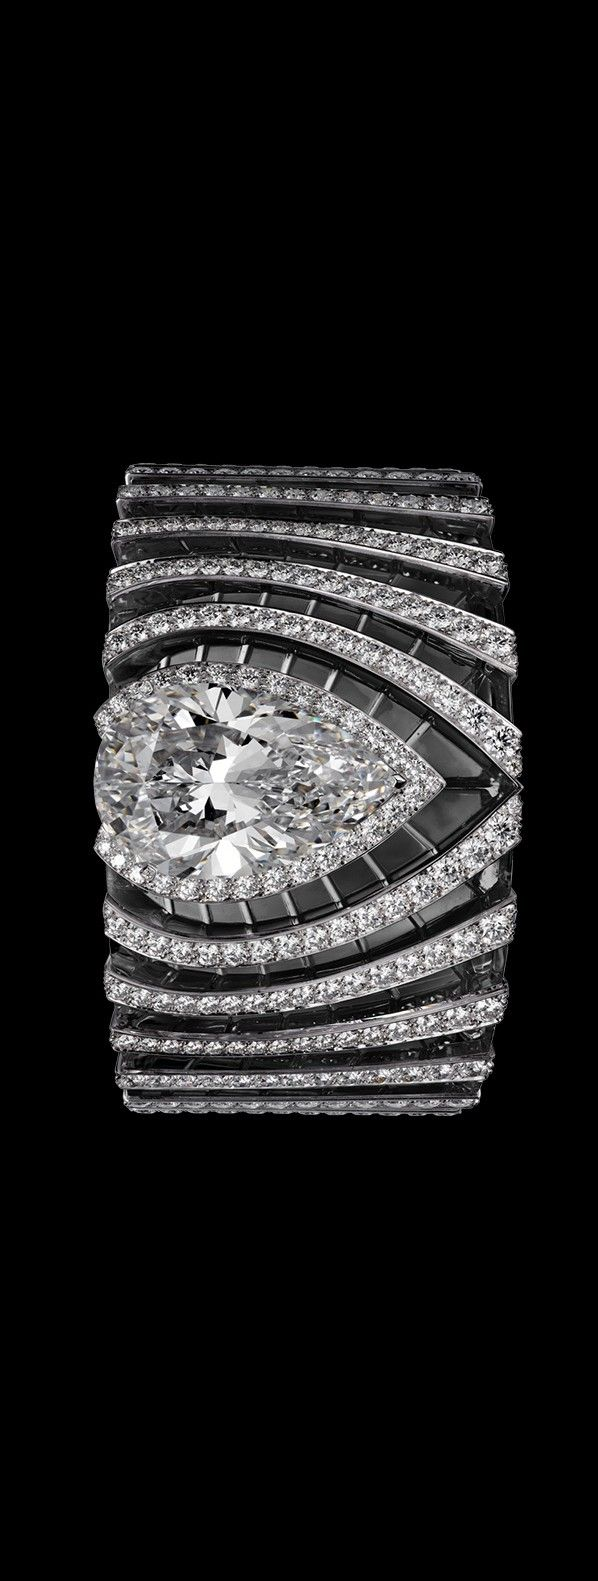 Cartier ♥✤  The House of Beccaria